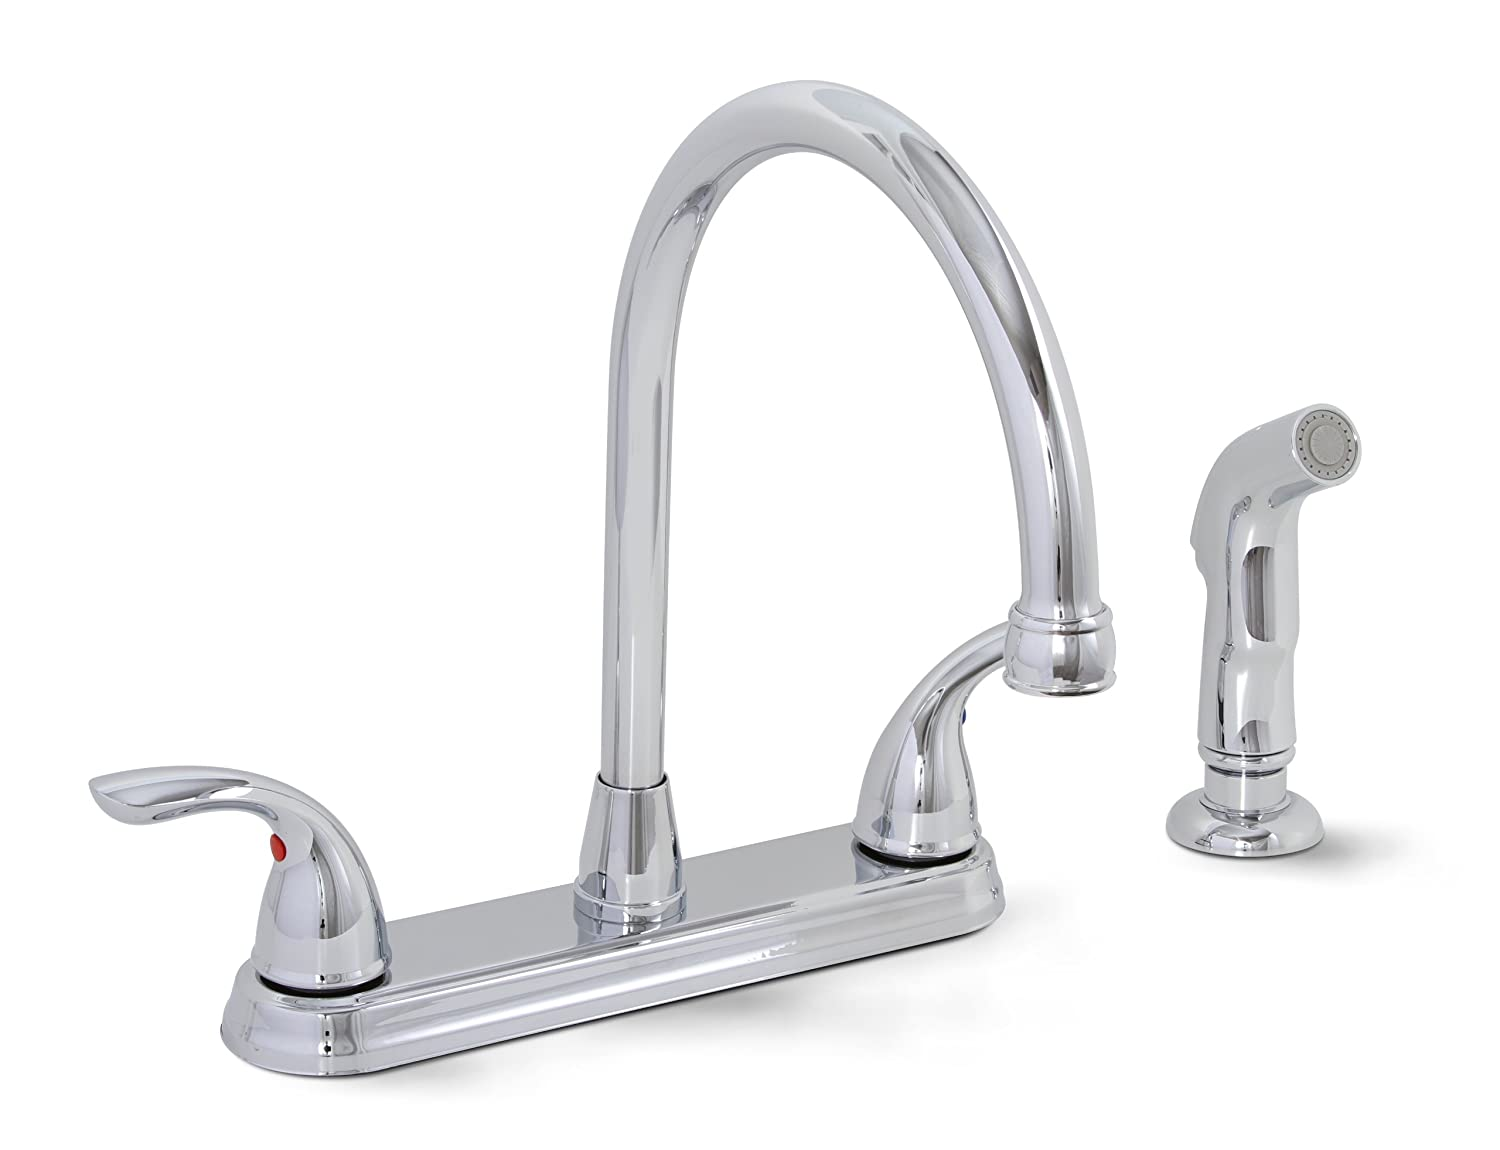 PREMIER GIDDS-120447LF Westlake Kitchen Faucet with Two Handles and Side Spray, Chrome, Lead Free